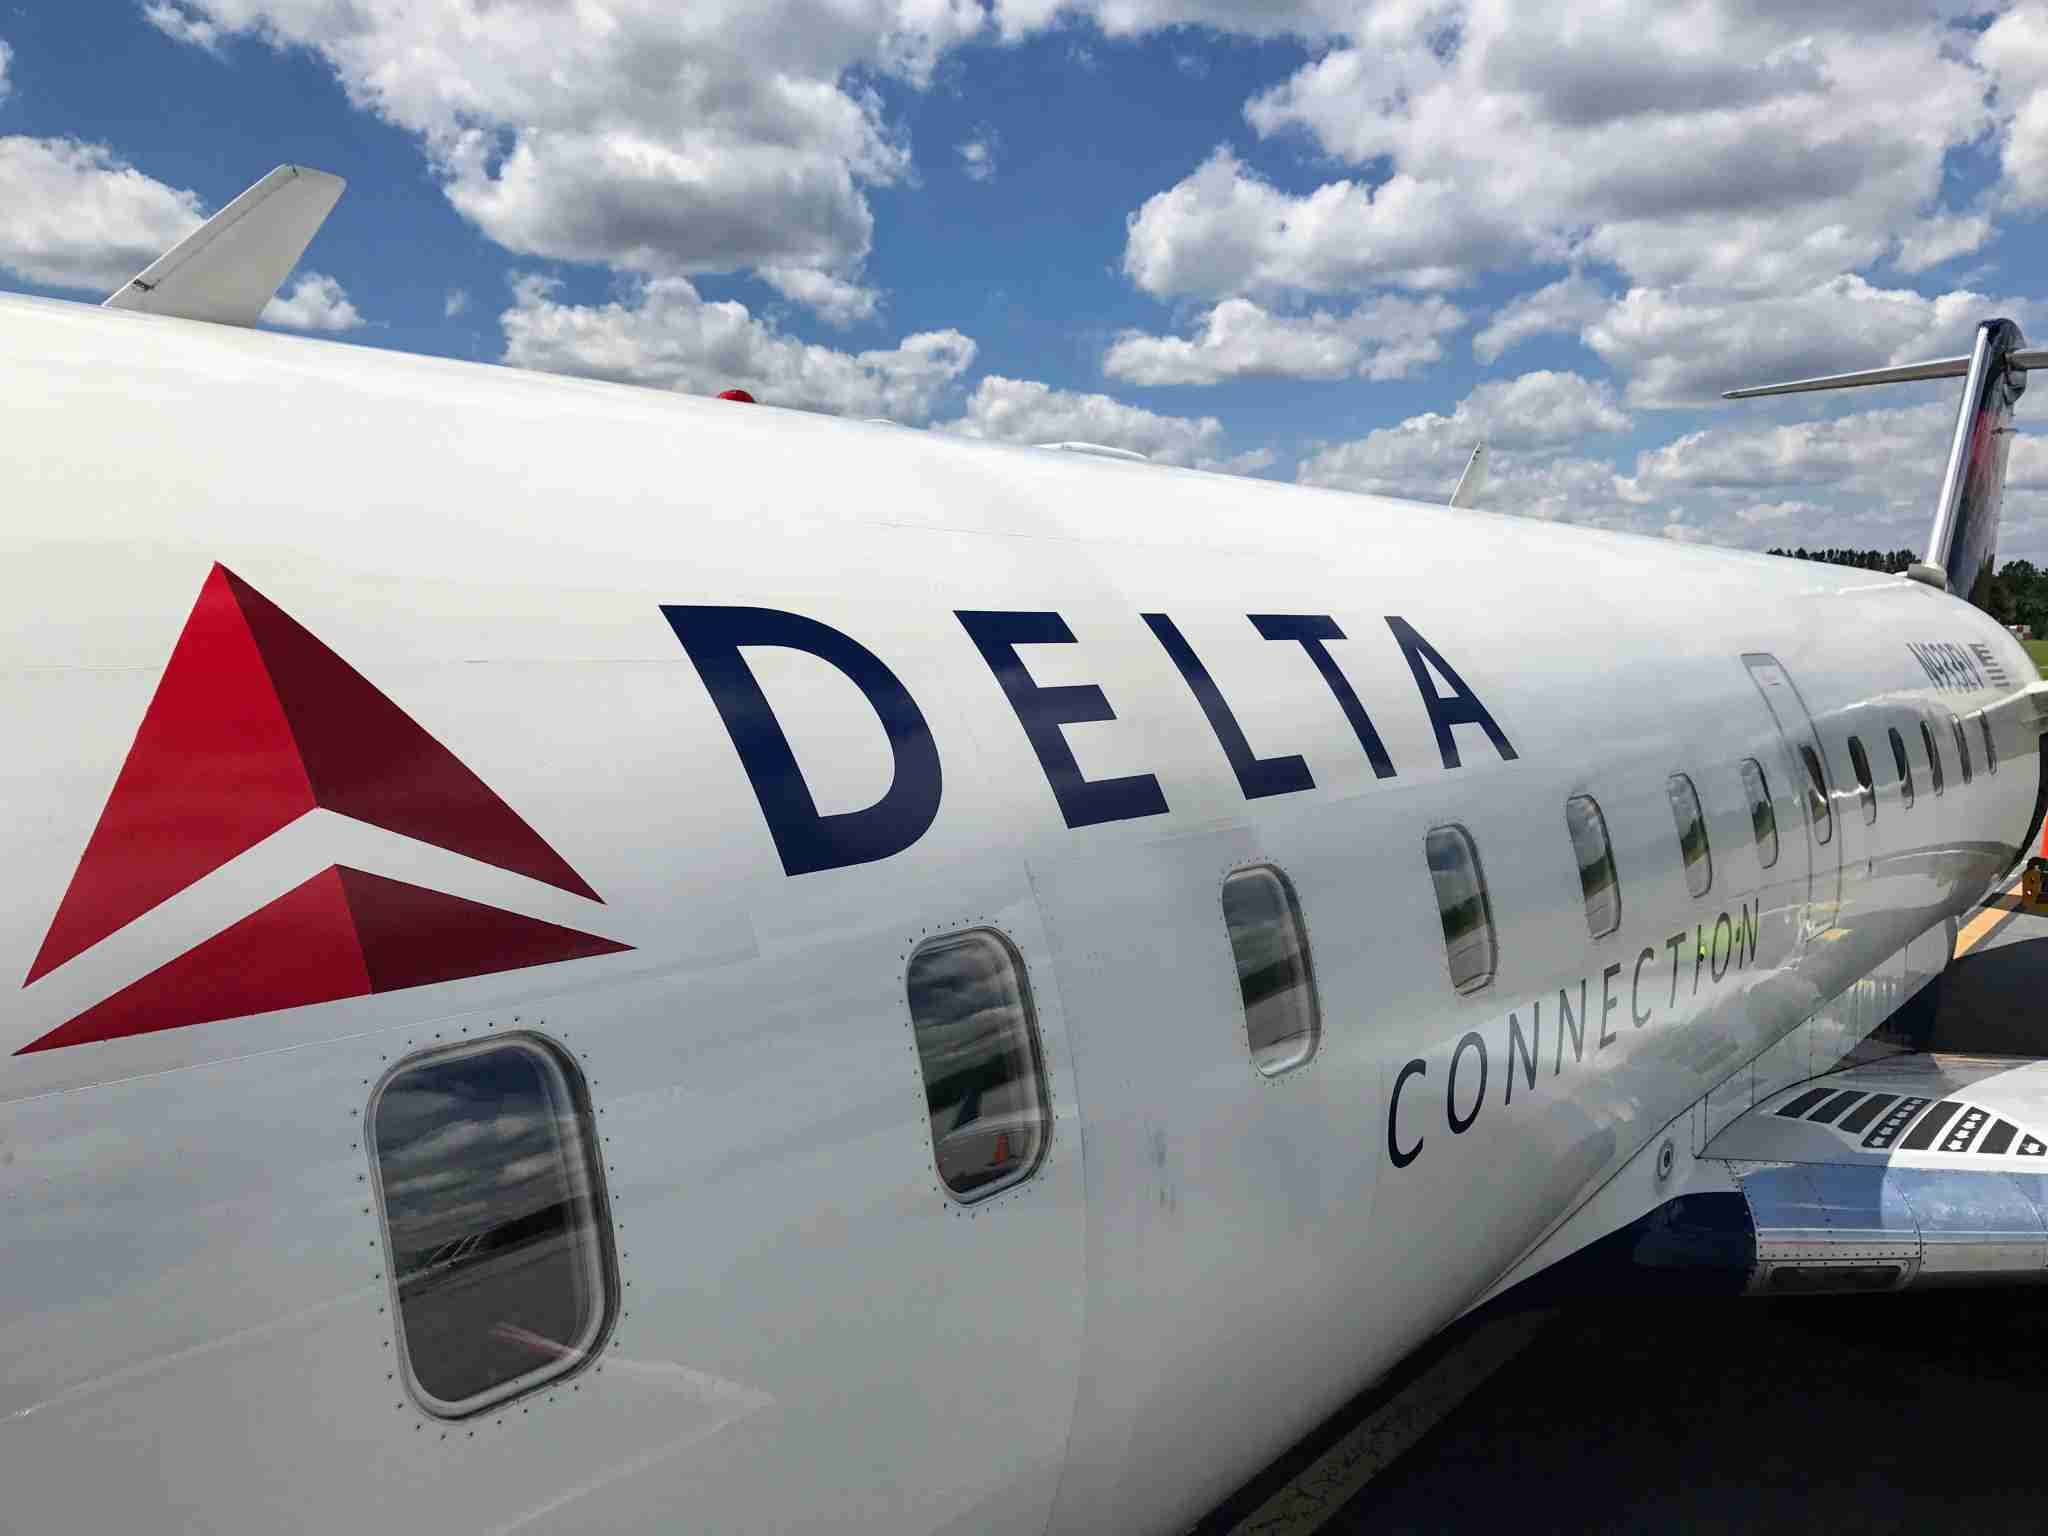 In past years, ExpressJet operating Delta Connection routes with a fleet of CRJ200 aircraft (Photo by Darren Murph / The Points Guy)